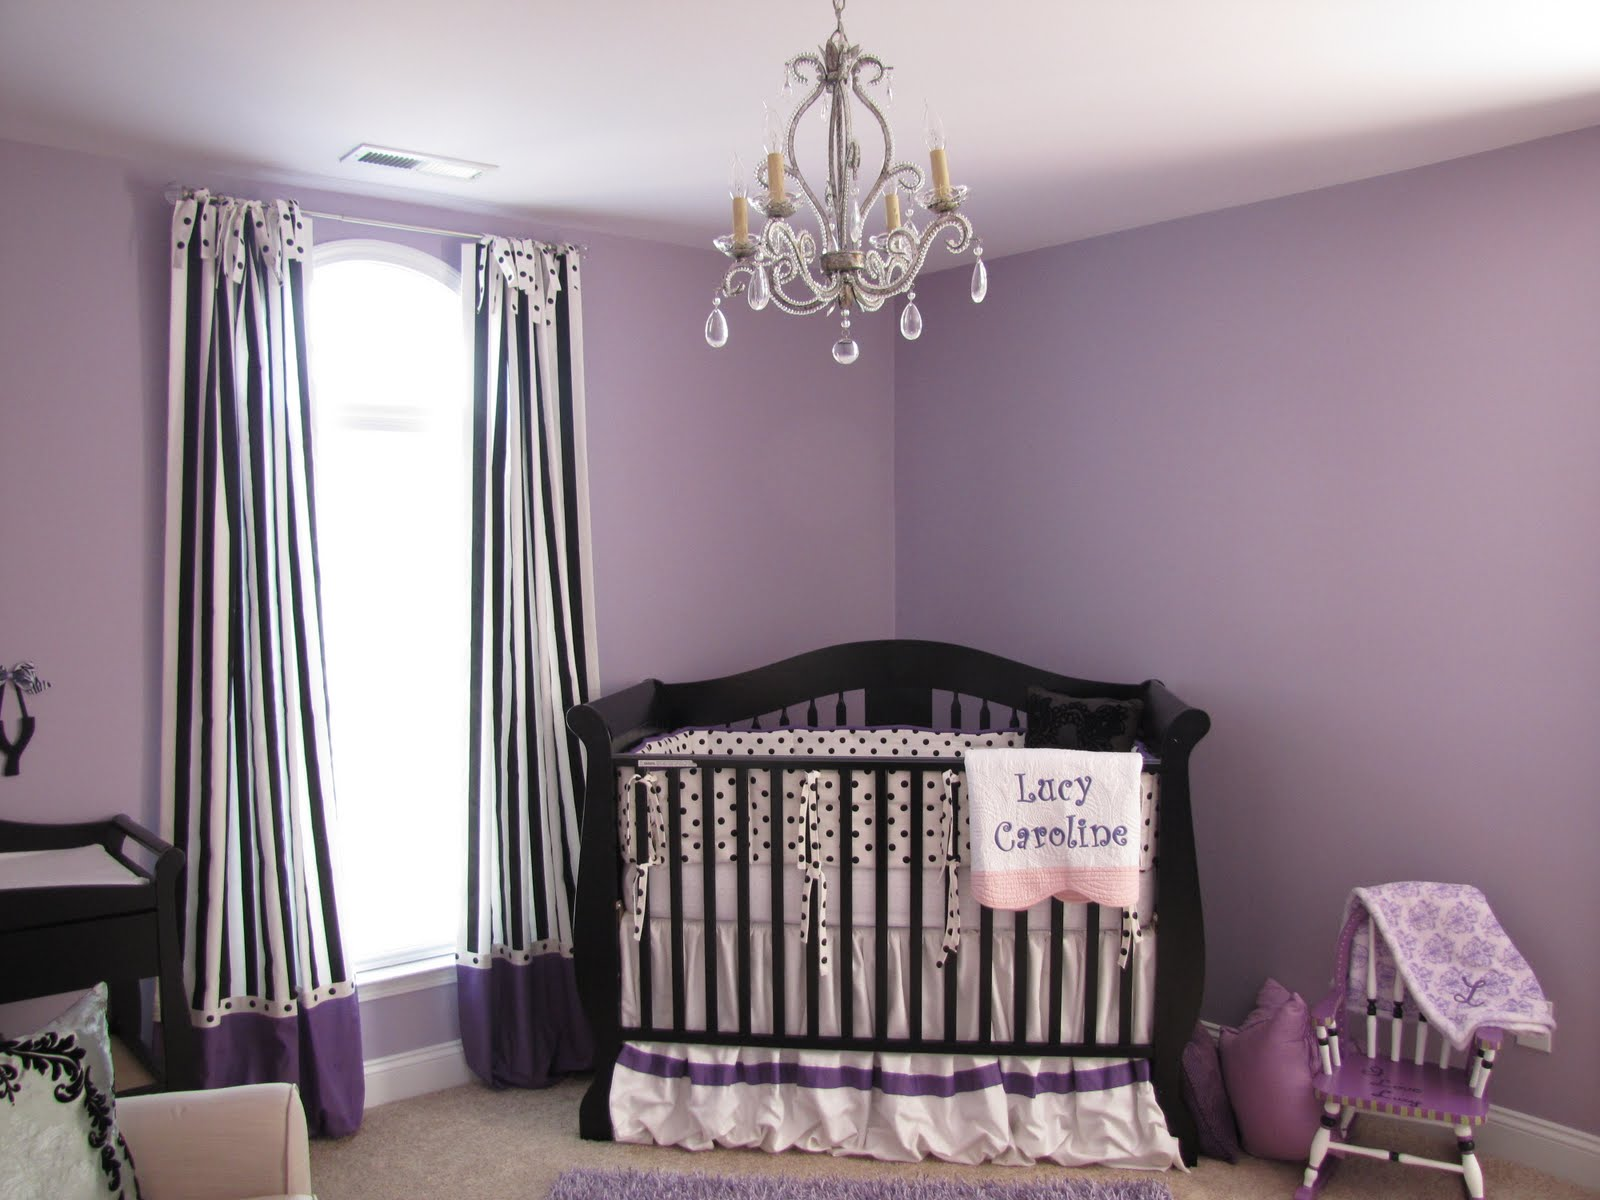 15 Ideas For The Baby Girl S Room Images